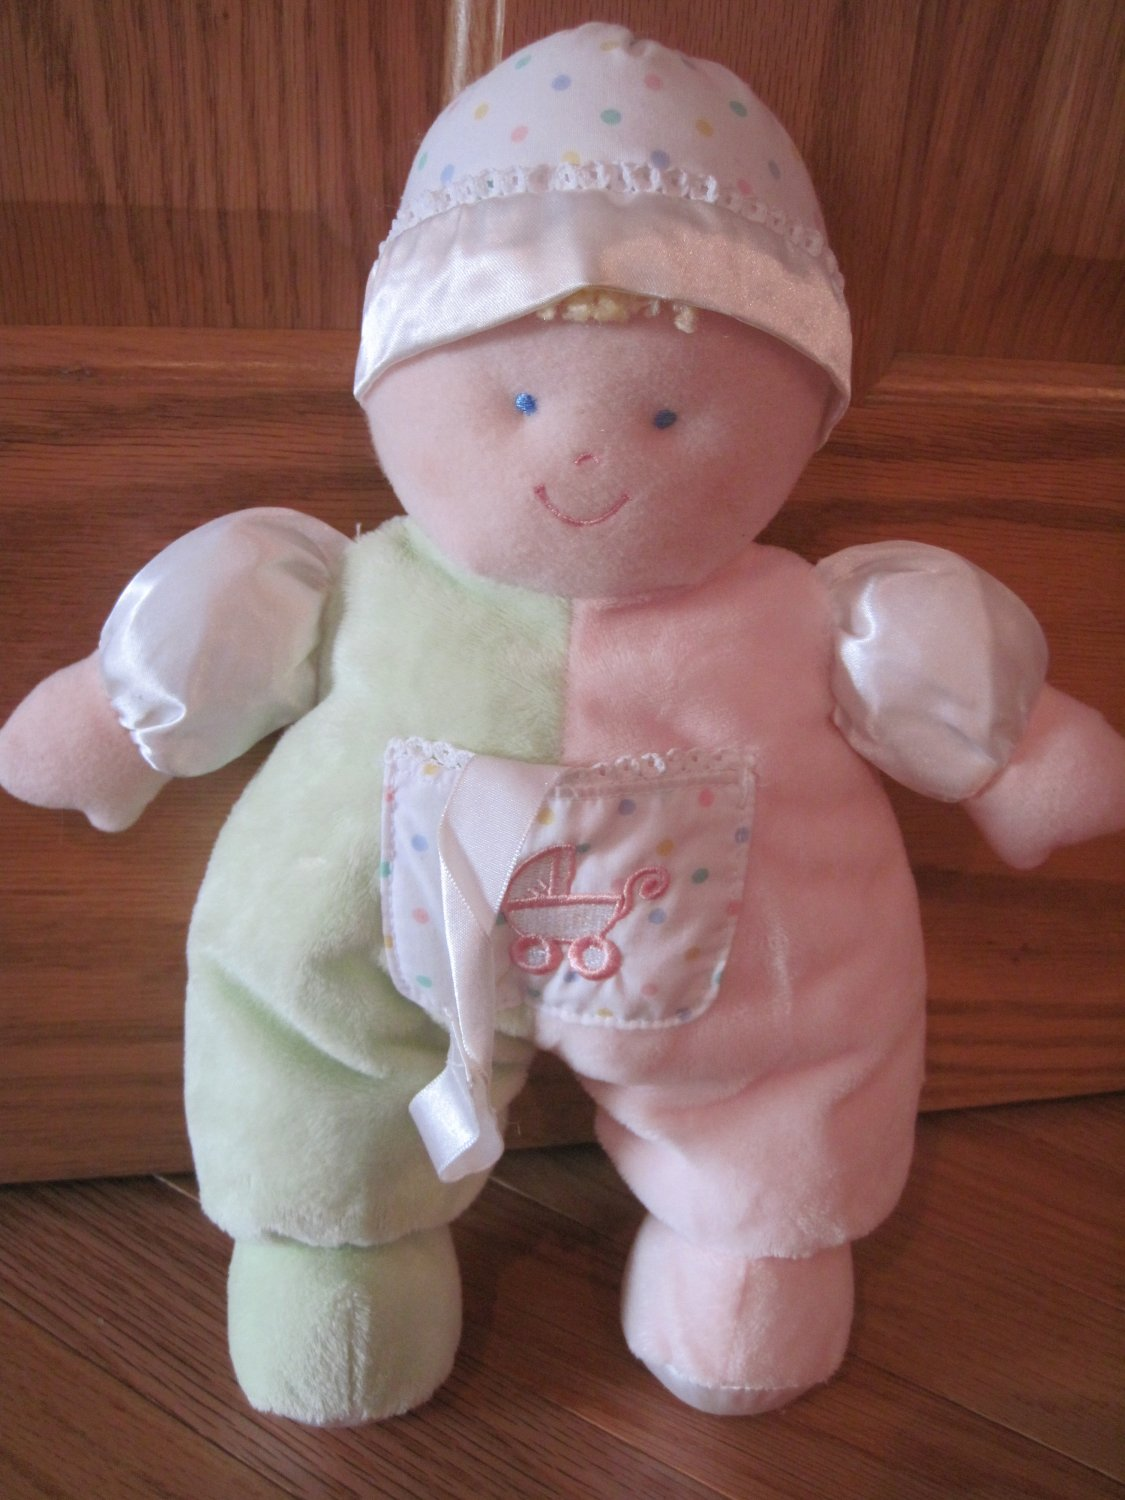 Kids Preferred Soft Baby Doll Pink Green White Satin Polka Dots Stroller